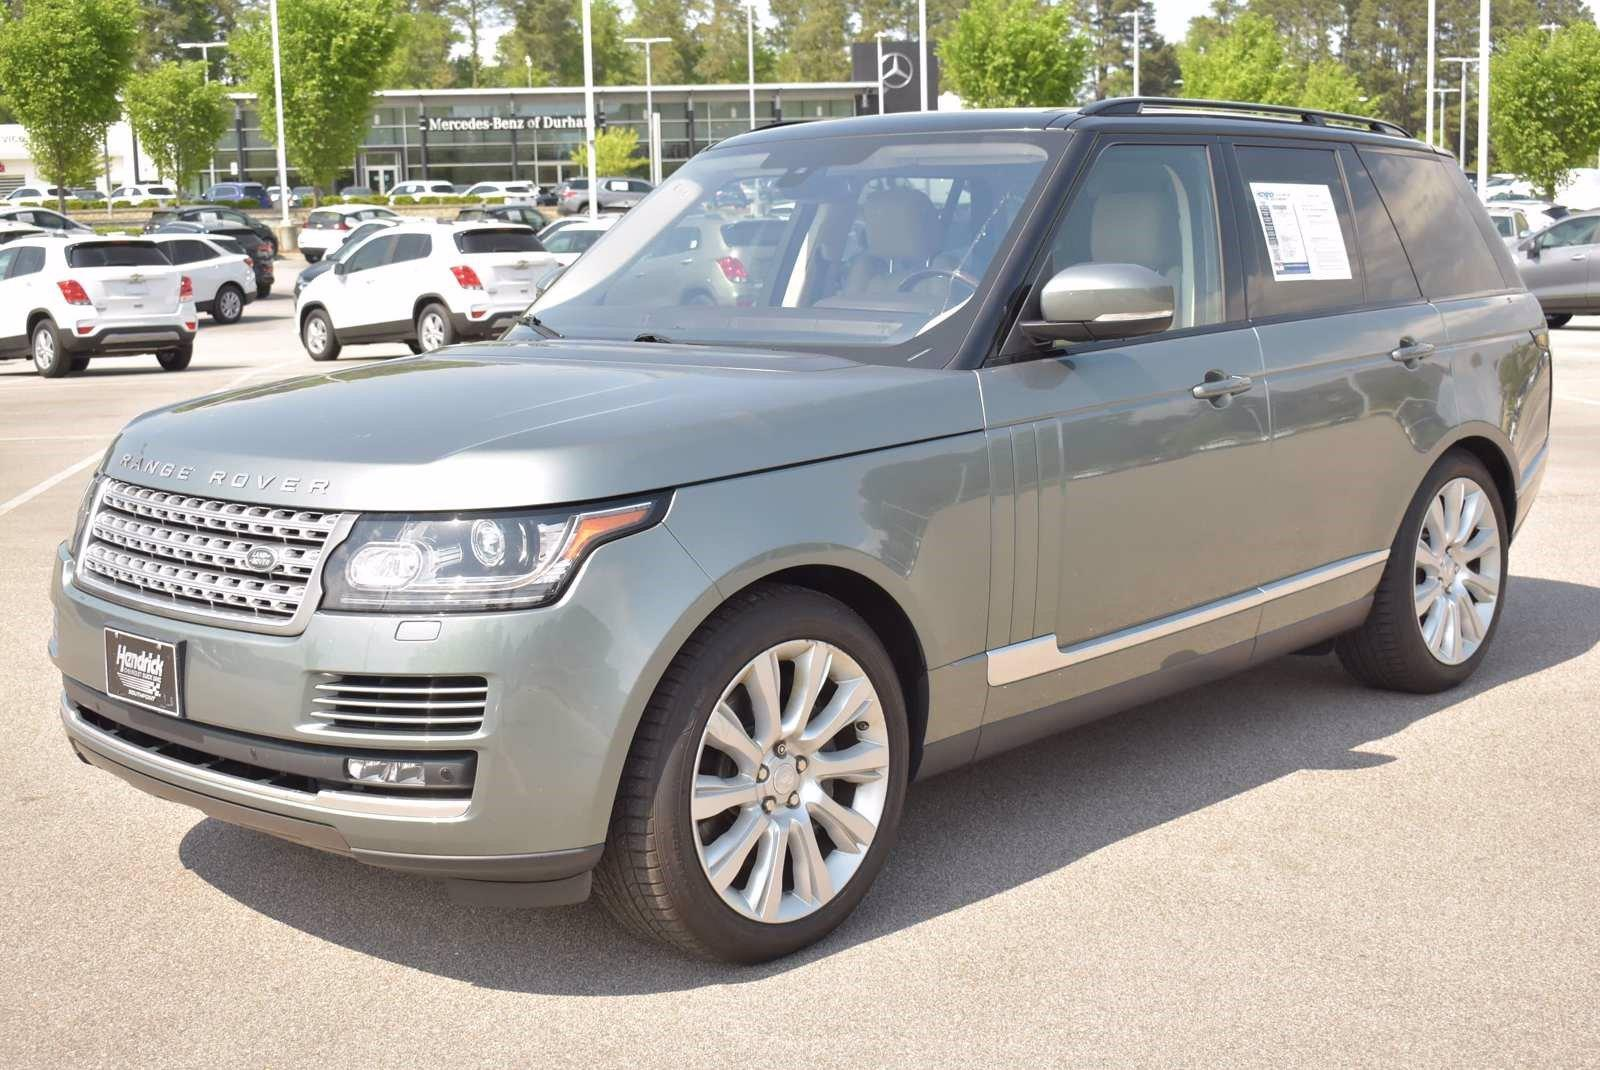 2016 Land Rover Range Rover Vehicle Photo in DURHAM, NC 27713